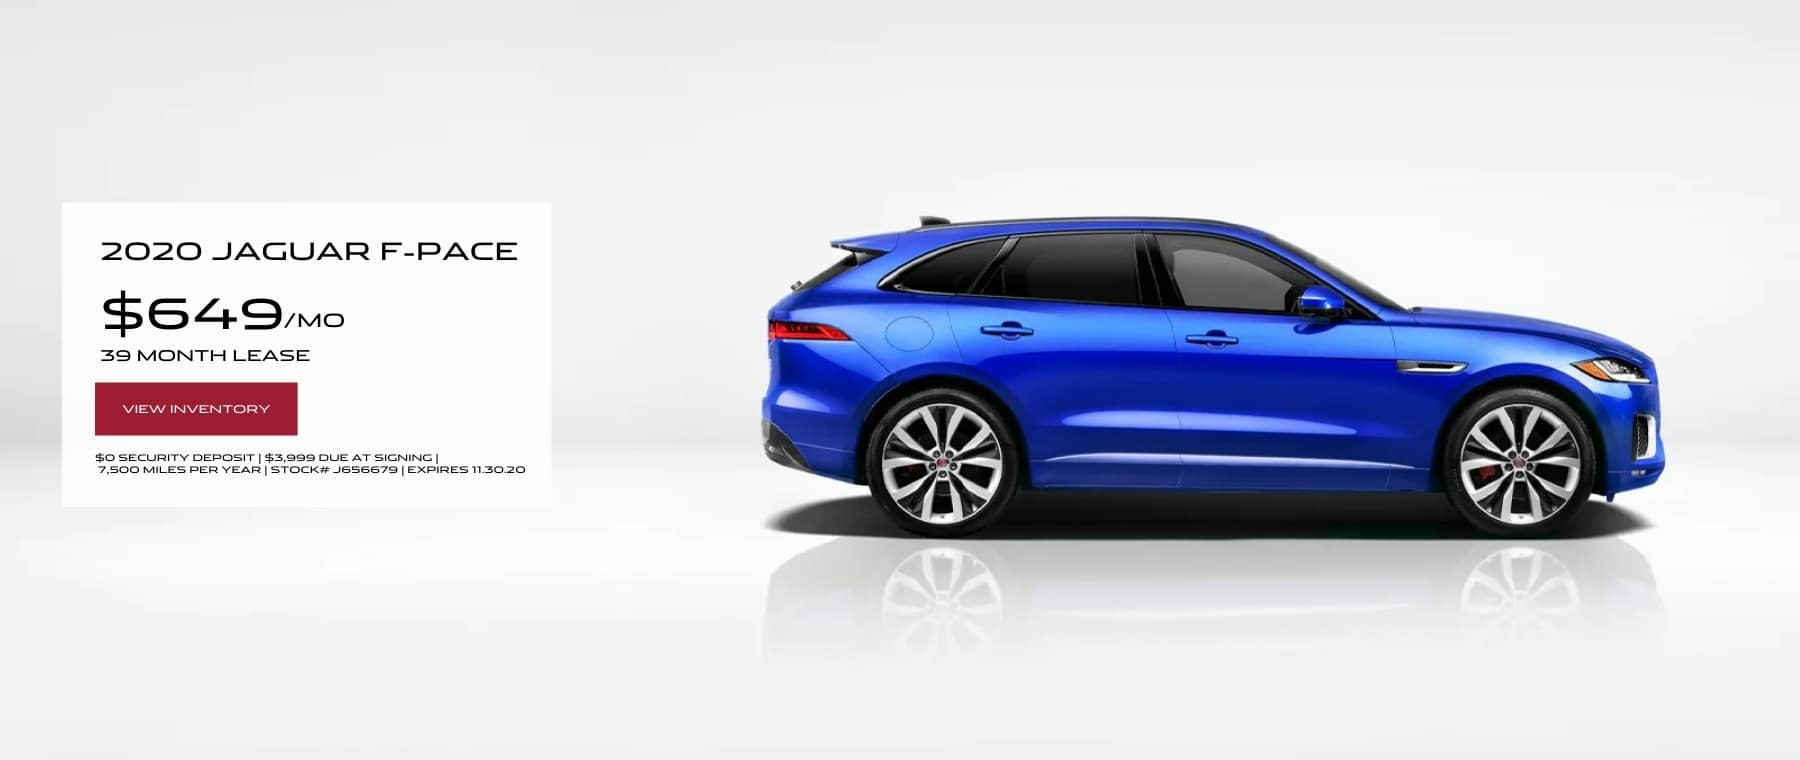 NOV F-PACE LEASE